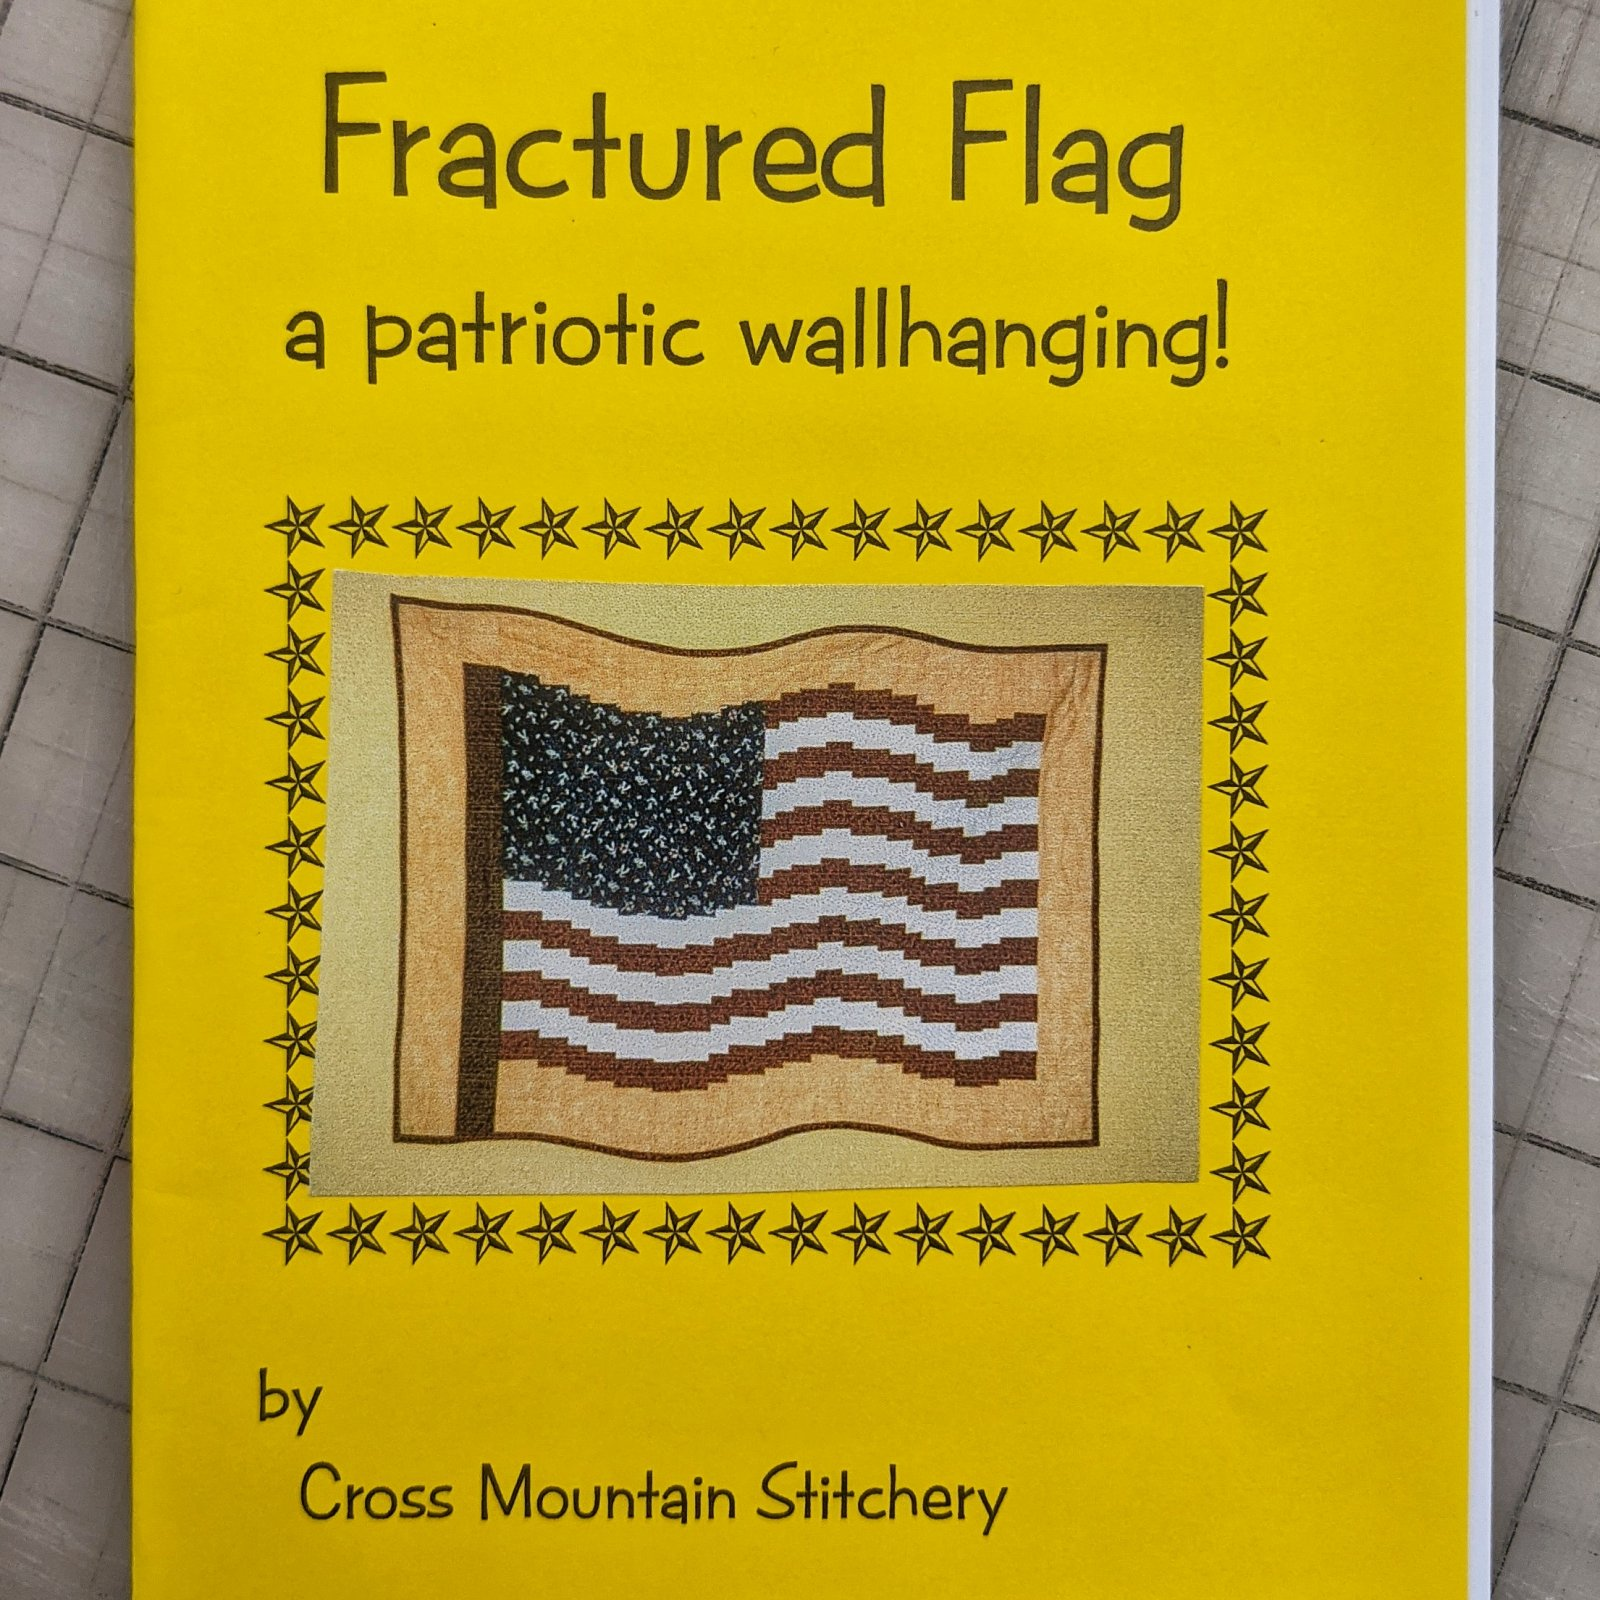 FRACTURED FLAG - A PATRIOTIC WALL HANGING!